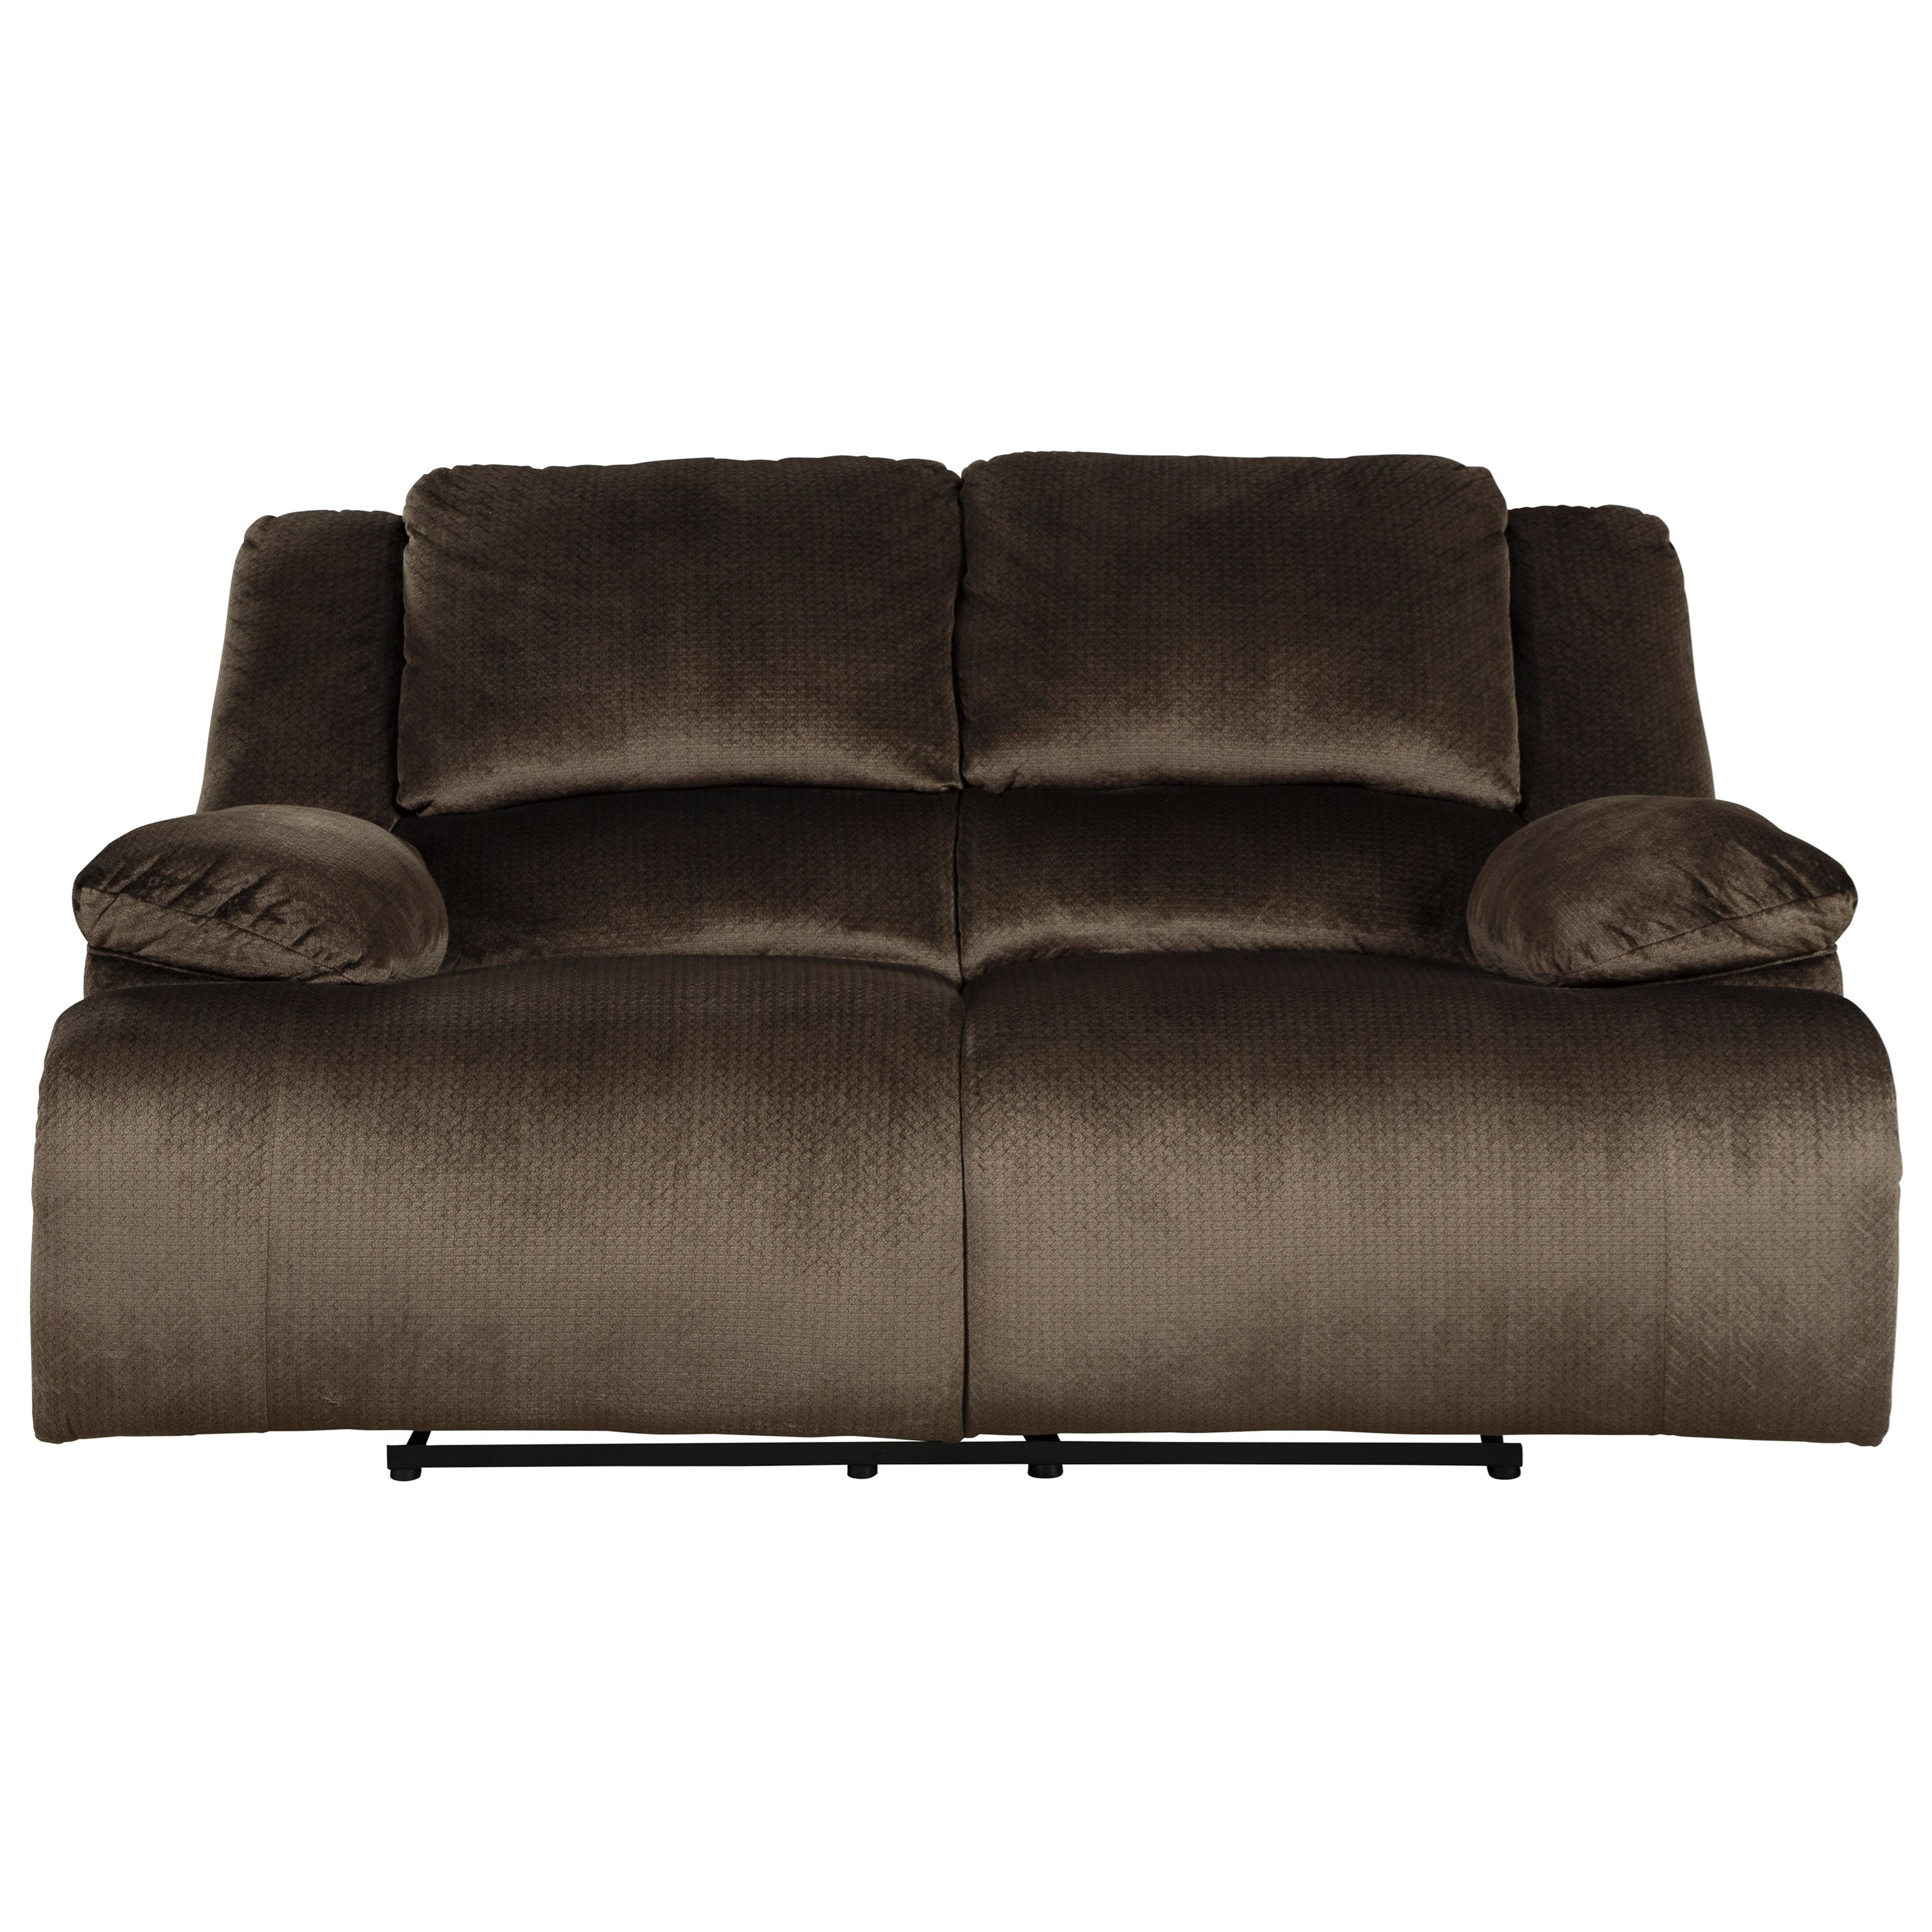 Clonmel Reclining Power Loveseat by Signature Design by Ashley at Value City Furniture